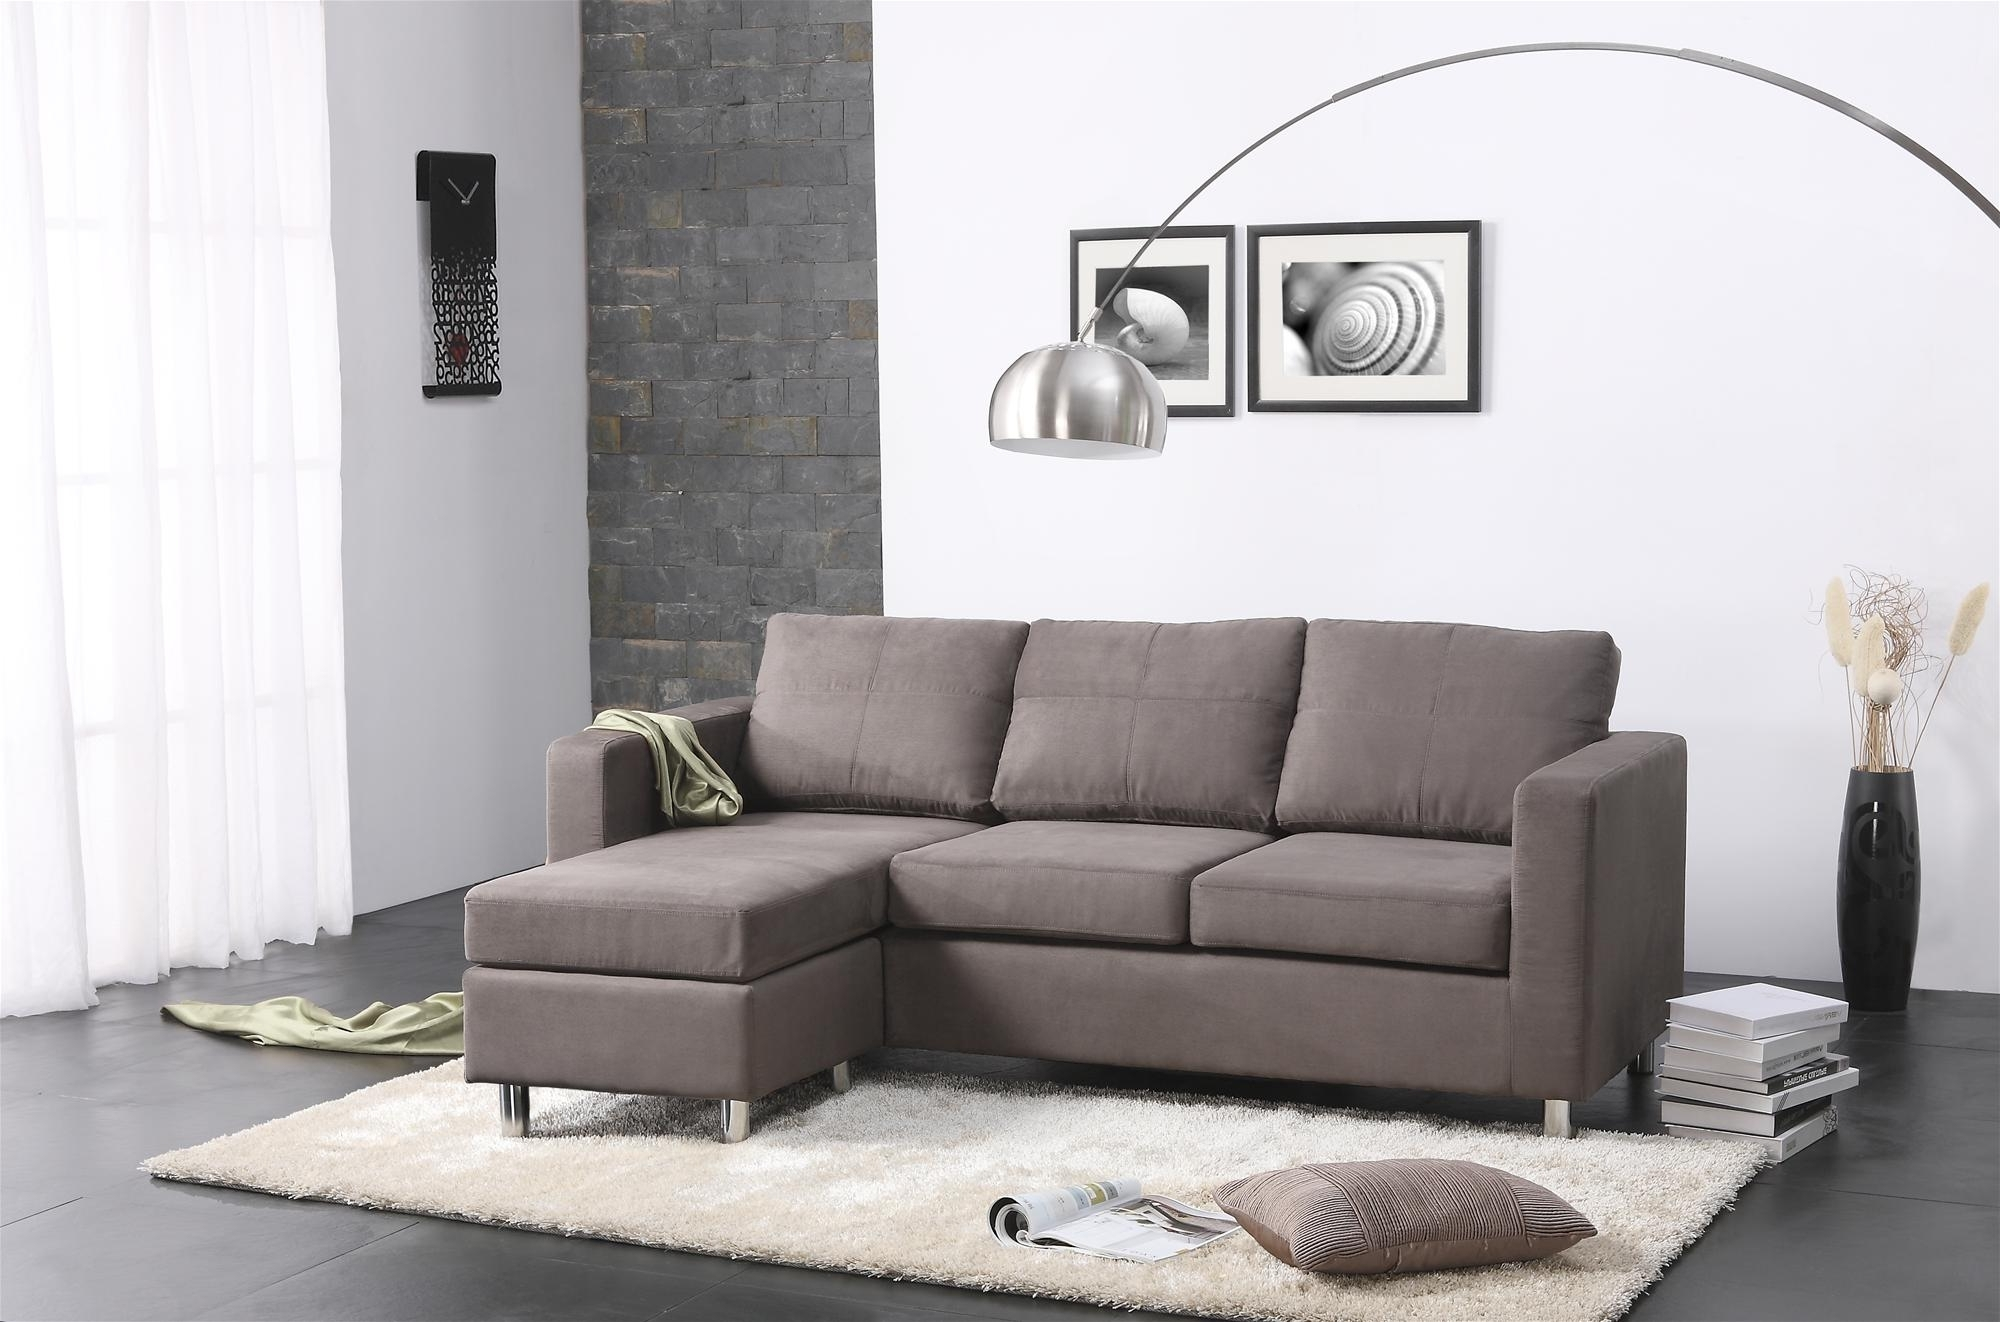 Modern Minimalist Living Room Design With Gray Microfiber Throughout Most Recently Released Tiny Sofas (View 6 of 15)